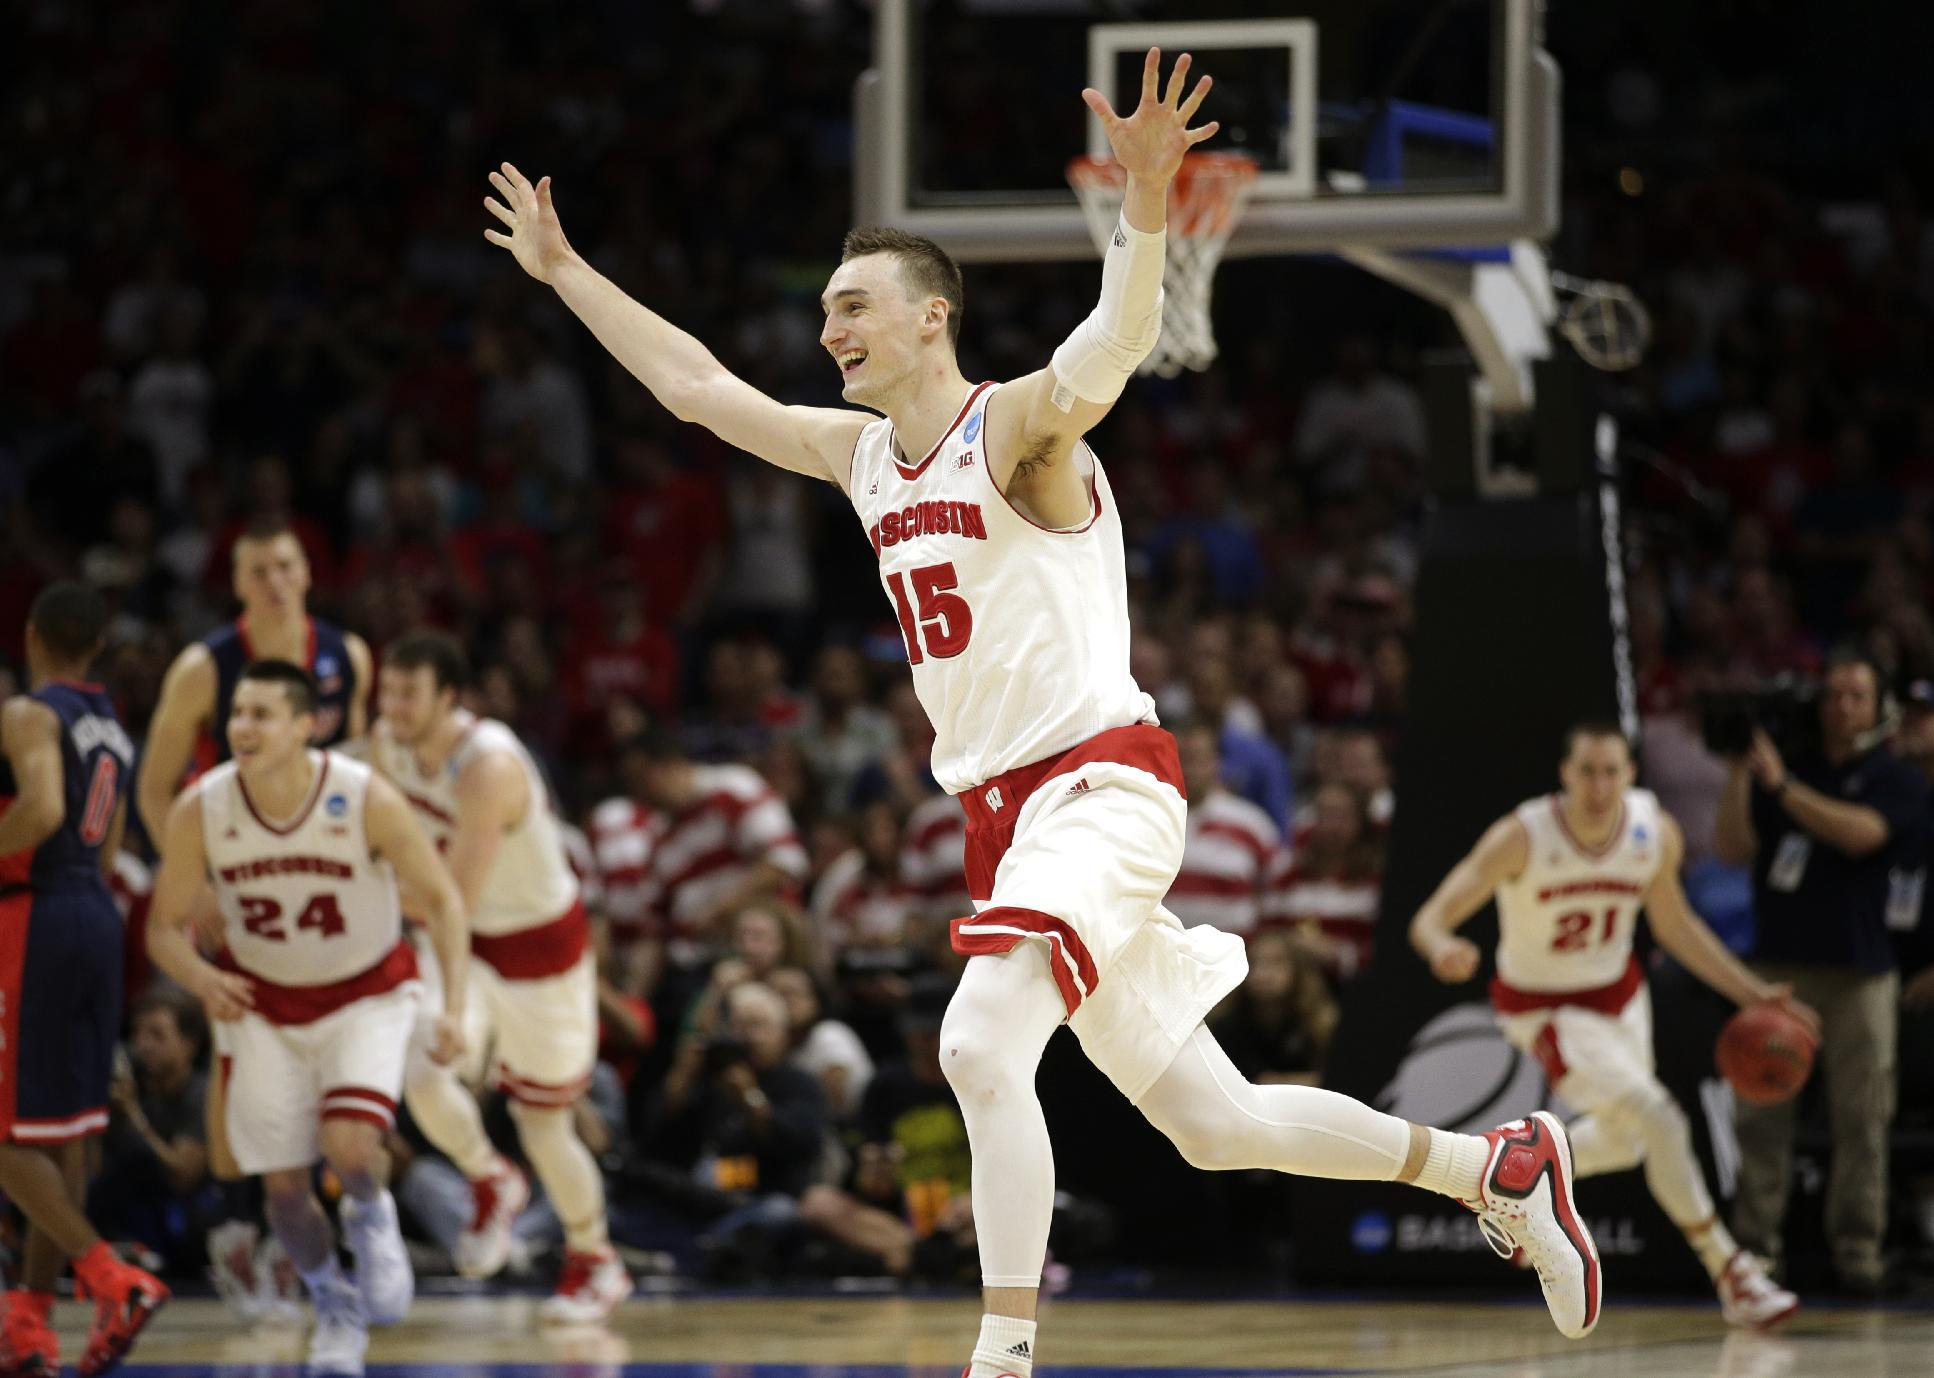 Wisconsin forward Sam Dekker (15) celebrates after Wisconsin beat Arizona 85-78 in a college basketball regional final in the NCAA Tournament, Saturday, March 28, 2015, in Los Angeles. Wisconsin advances to the Final Four in Indianapolis. (AP Photo/Jae C. Hong)